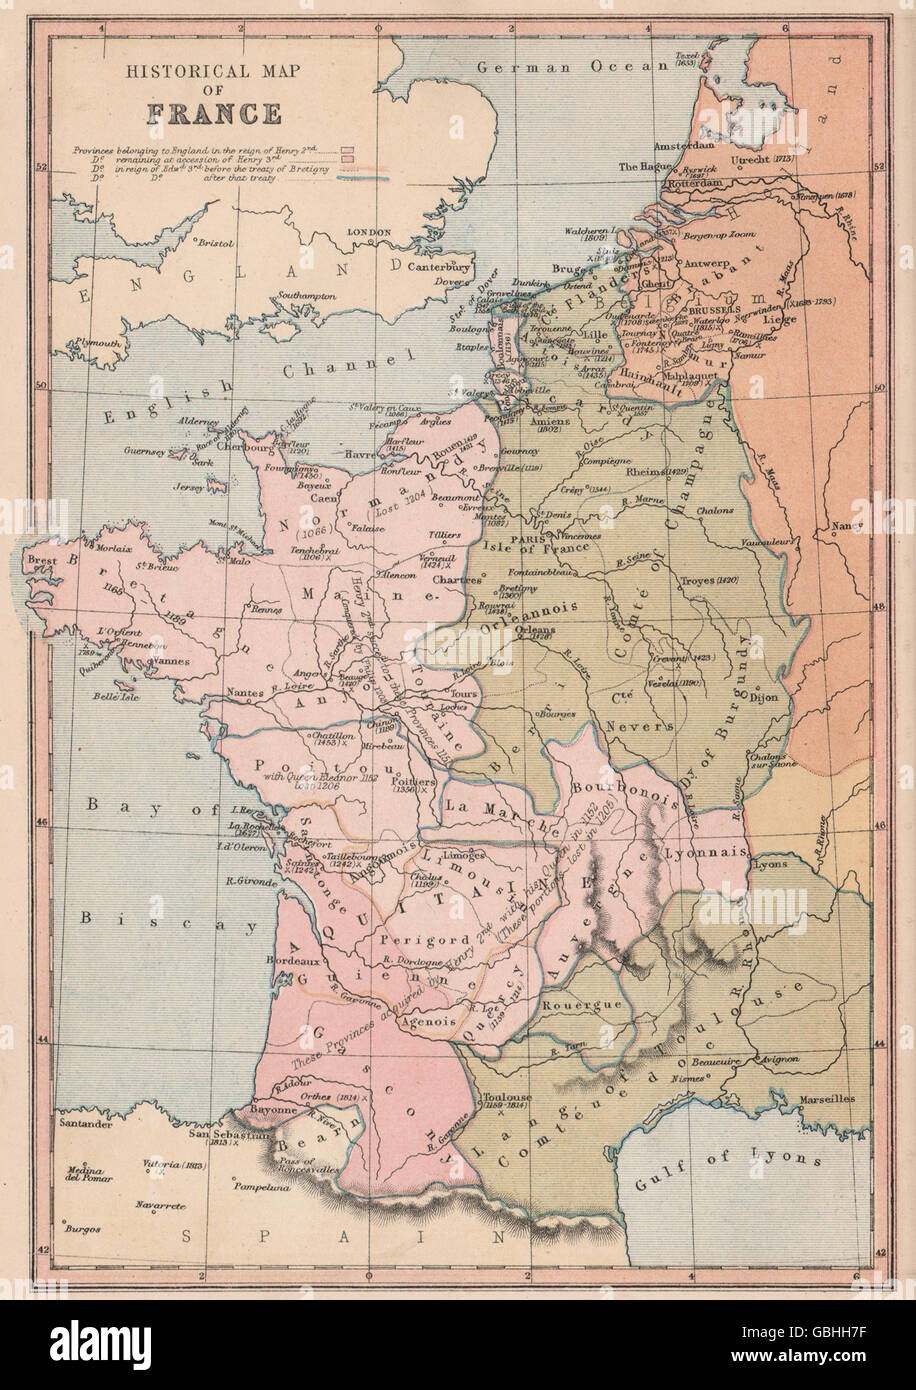 Map Of France With Key.English Territory In France Key Battles Dates Date Land Lost Stock